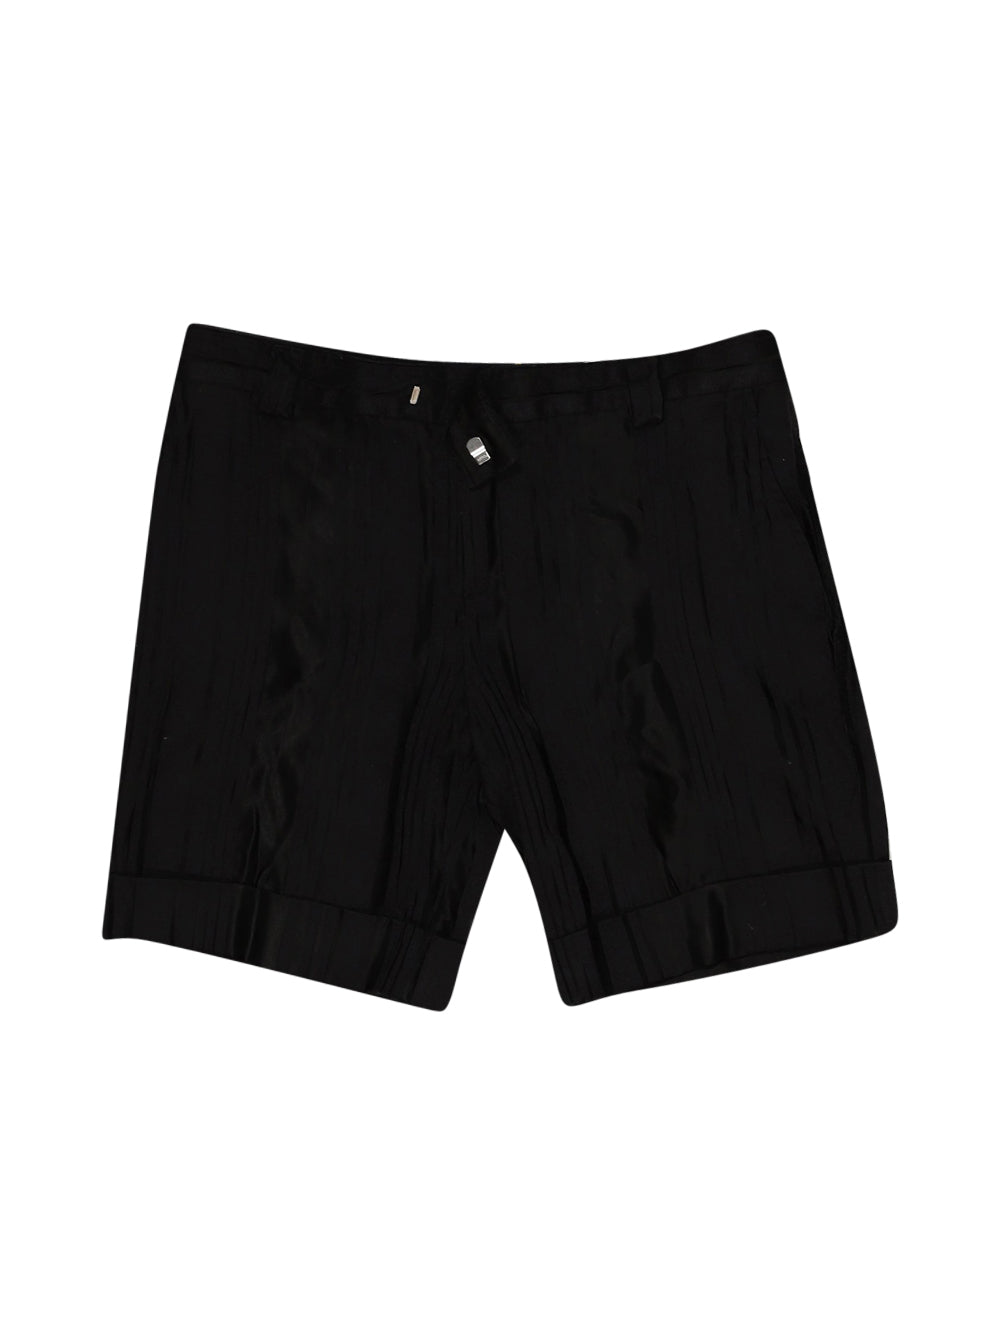 Front photo of Preloved Roberto Cavalli Black Woman's shorts - size 10/M